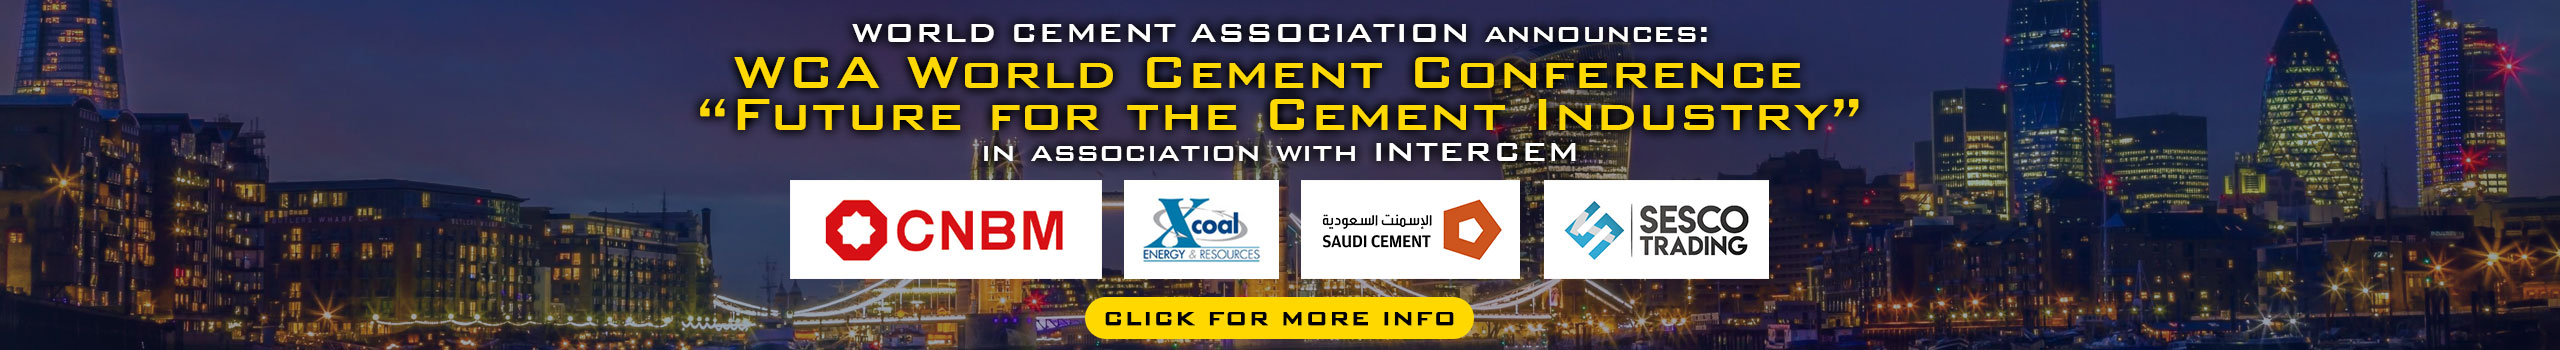 wca-general-assembly-and-conference-2018-e